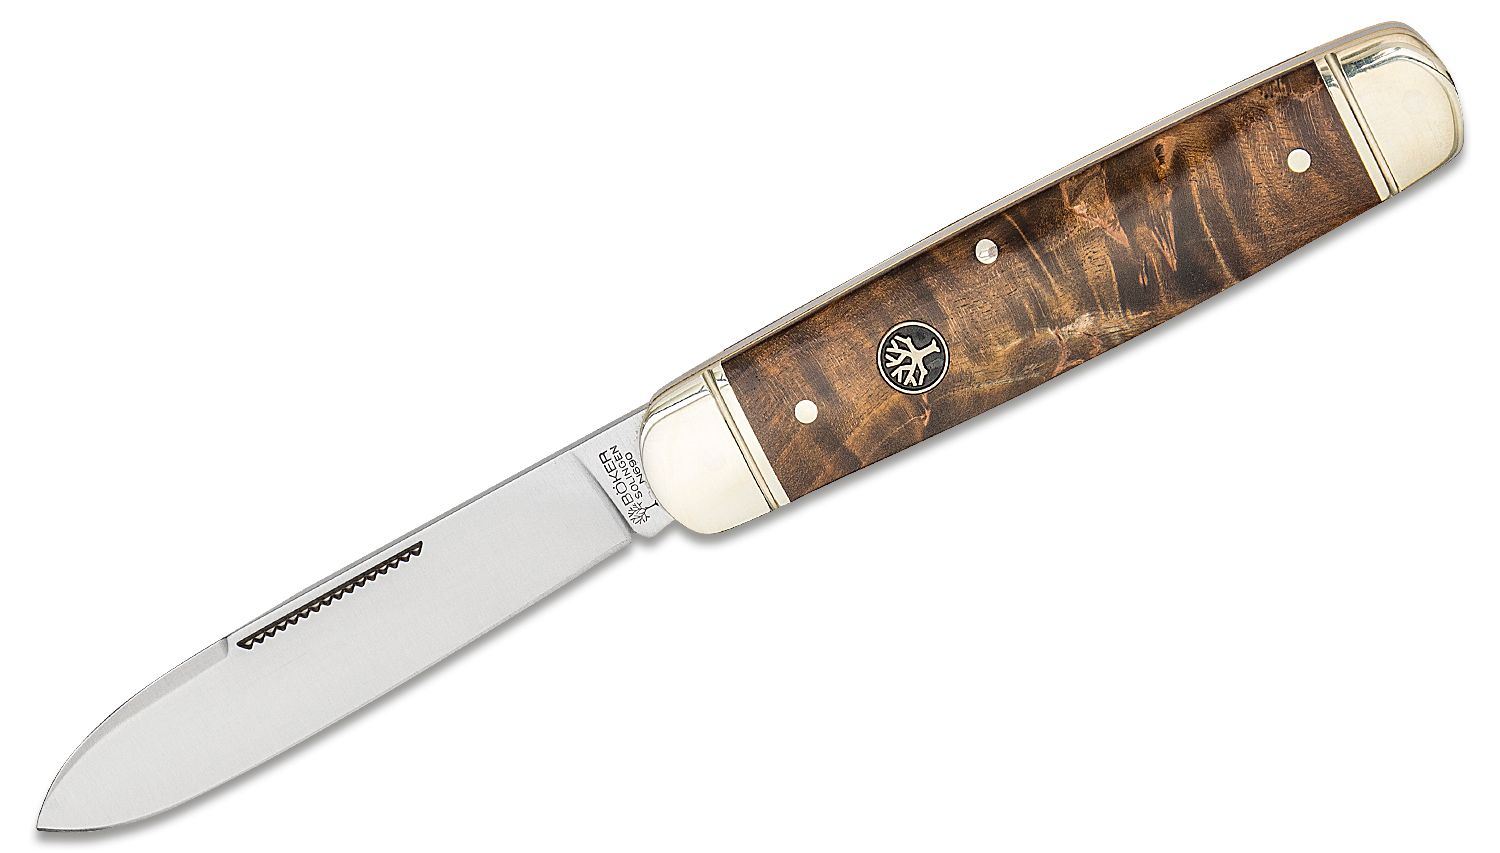 Boker Cattle Knife 3.23 inch N690 Satin Blade, Stabilized Curly Birch Handles with Nickel Silver Bolsters